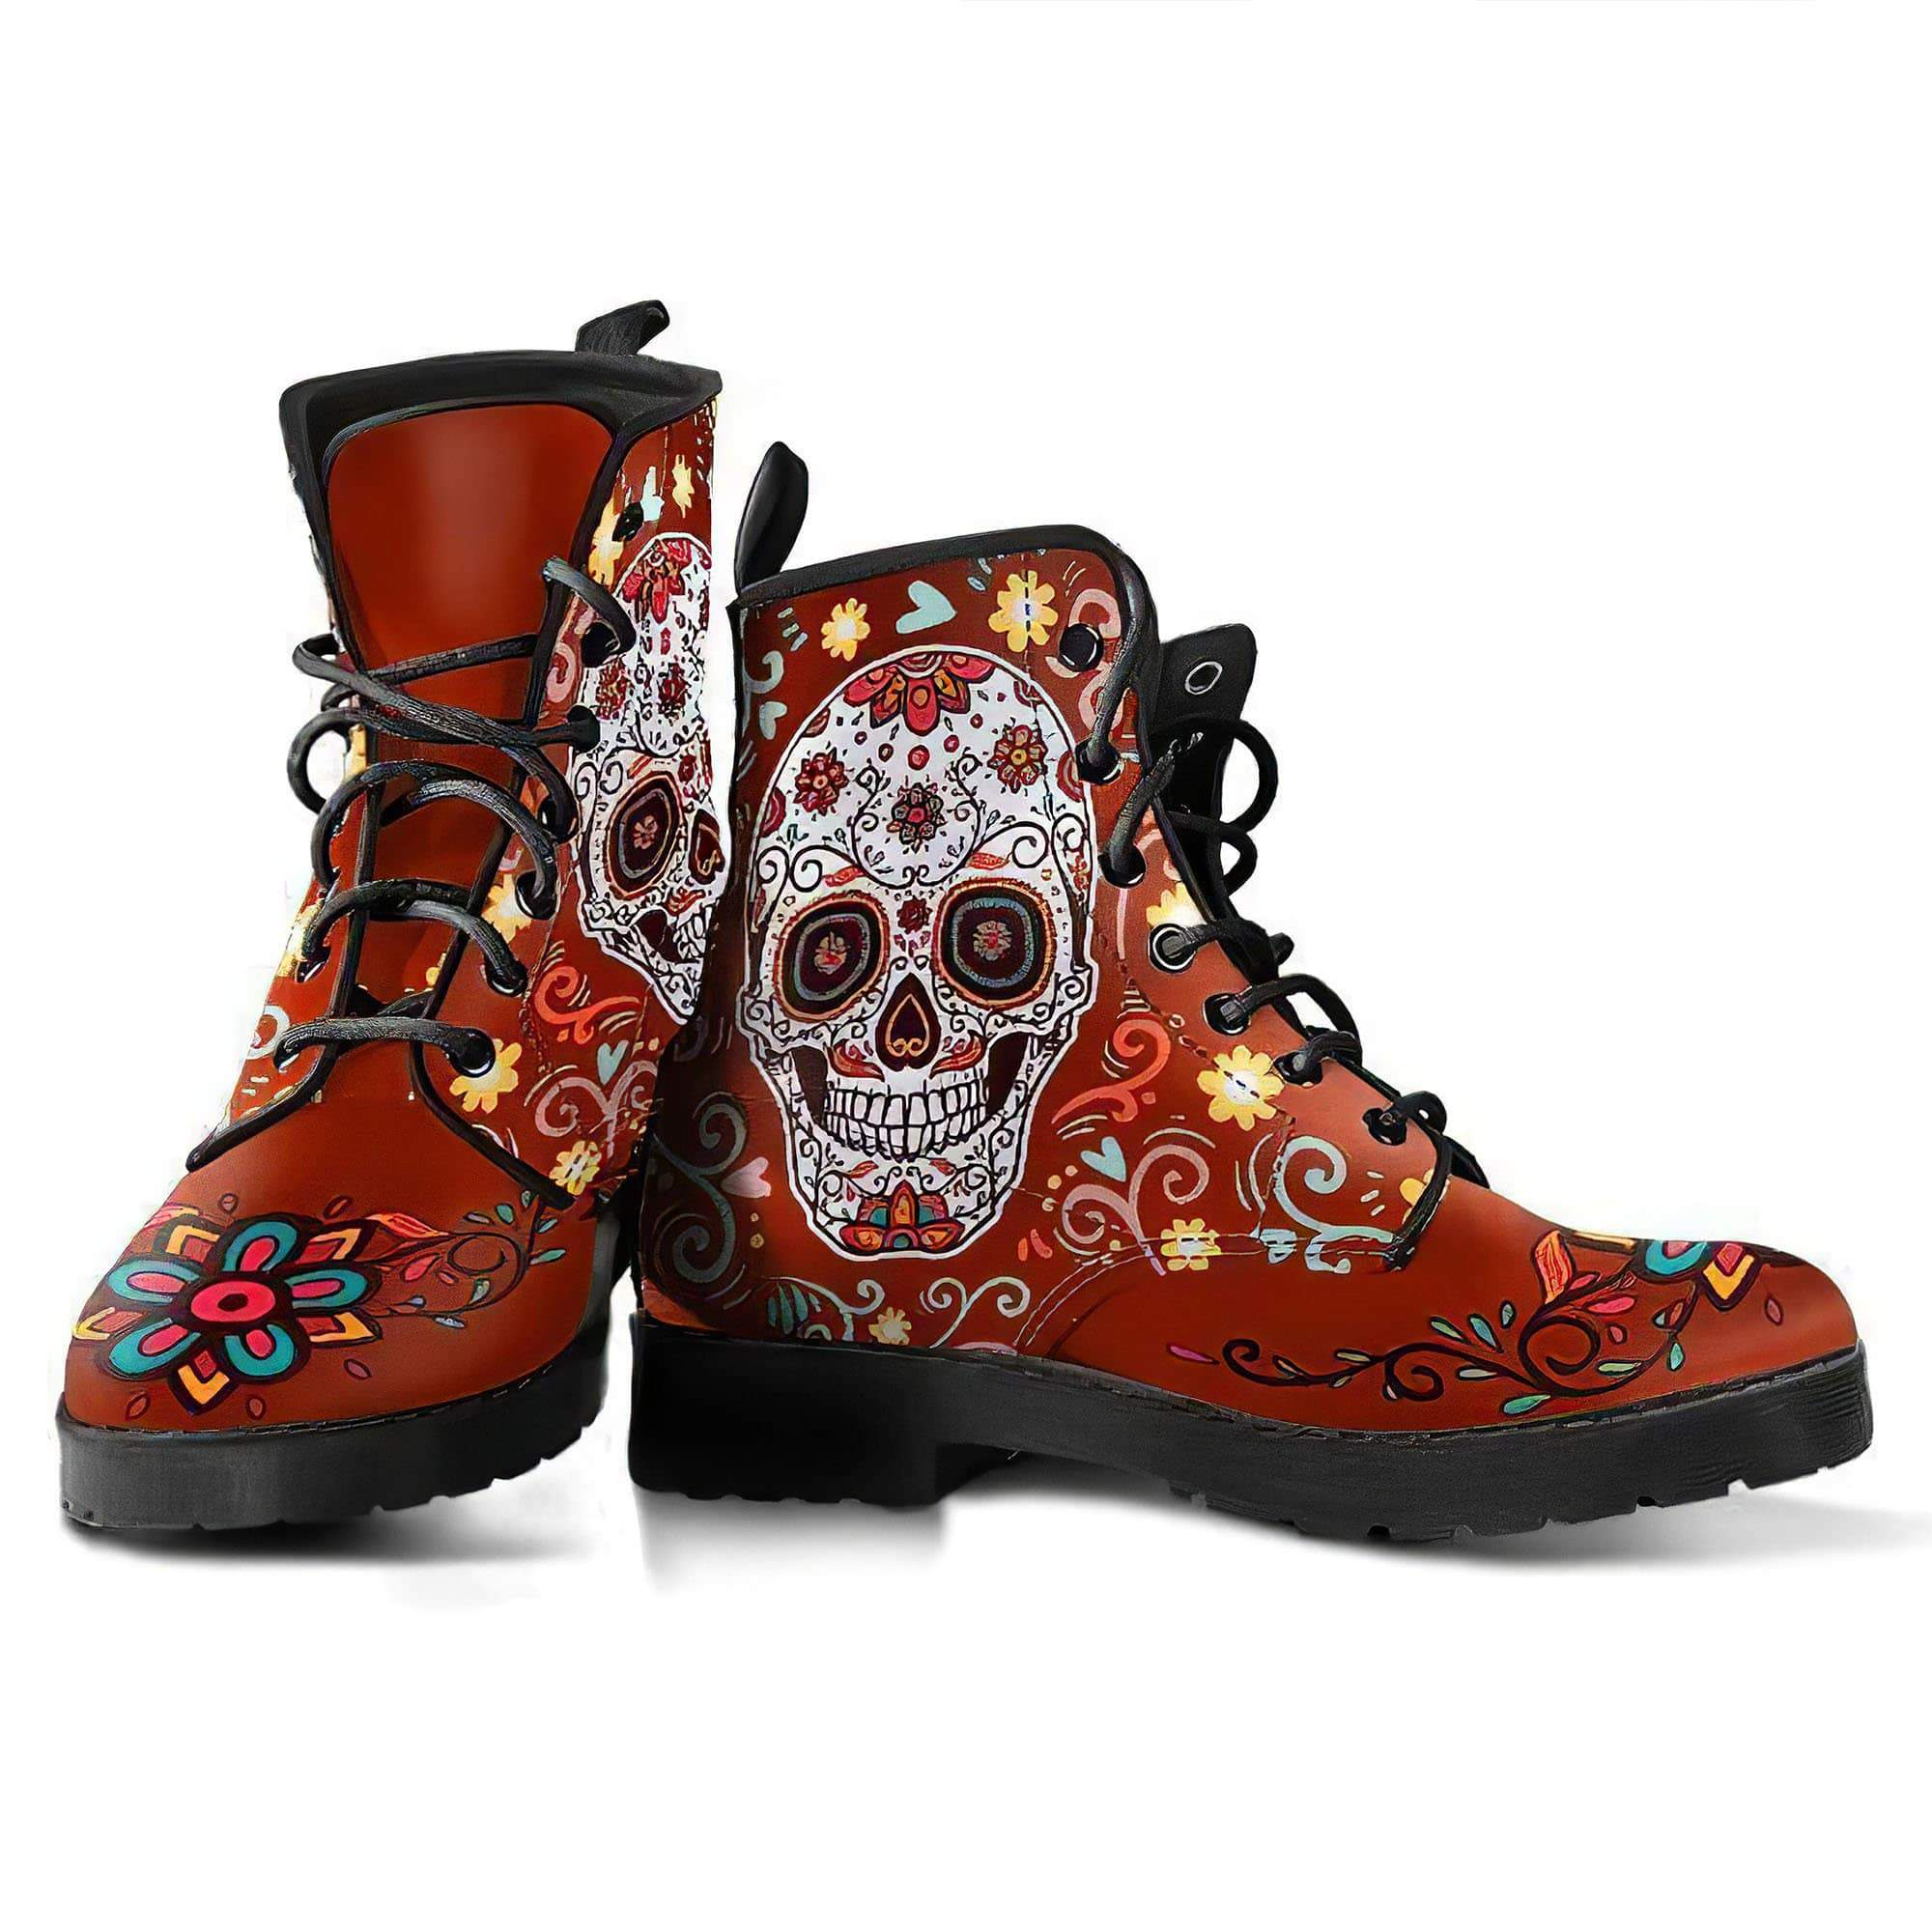 Red Sugar Skull Women's Boots Vegan Friendly Leather Women's Leather Boots